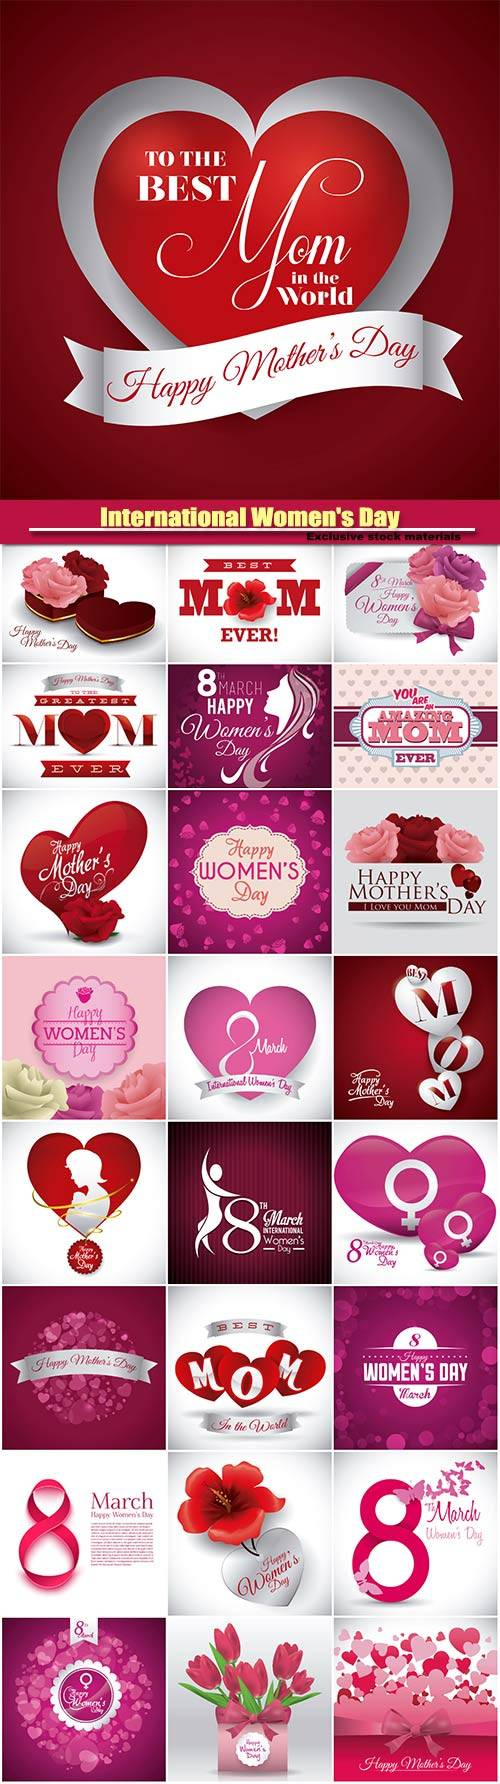 International Women's Day, 8 March backgrounds vector